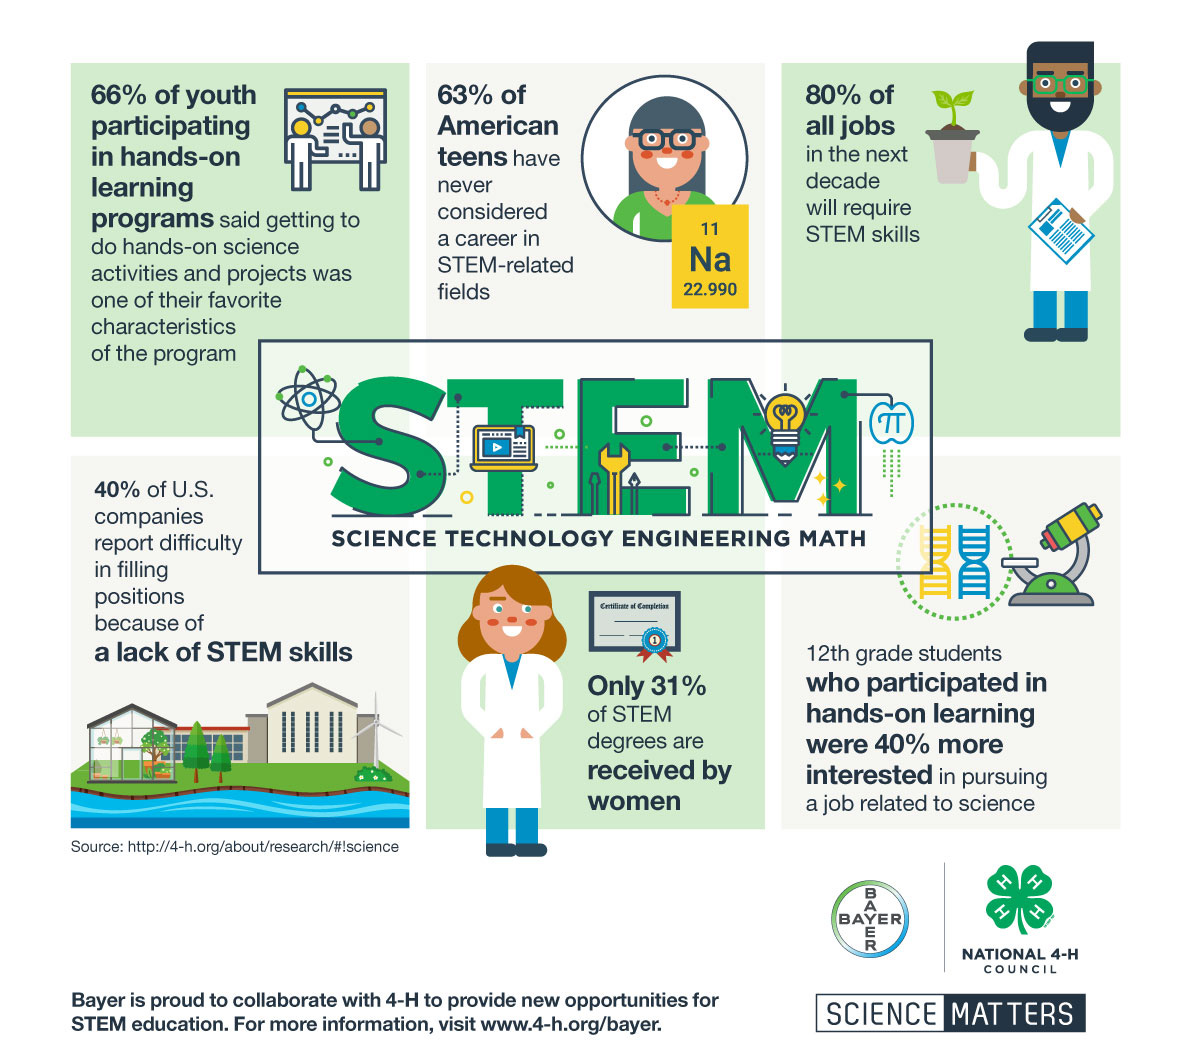 Stem Education: Bayer, 4-H To Grow Tomorrow's Science Leaders